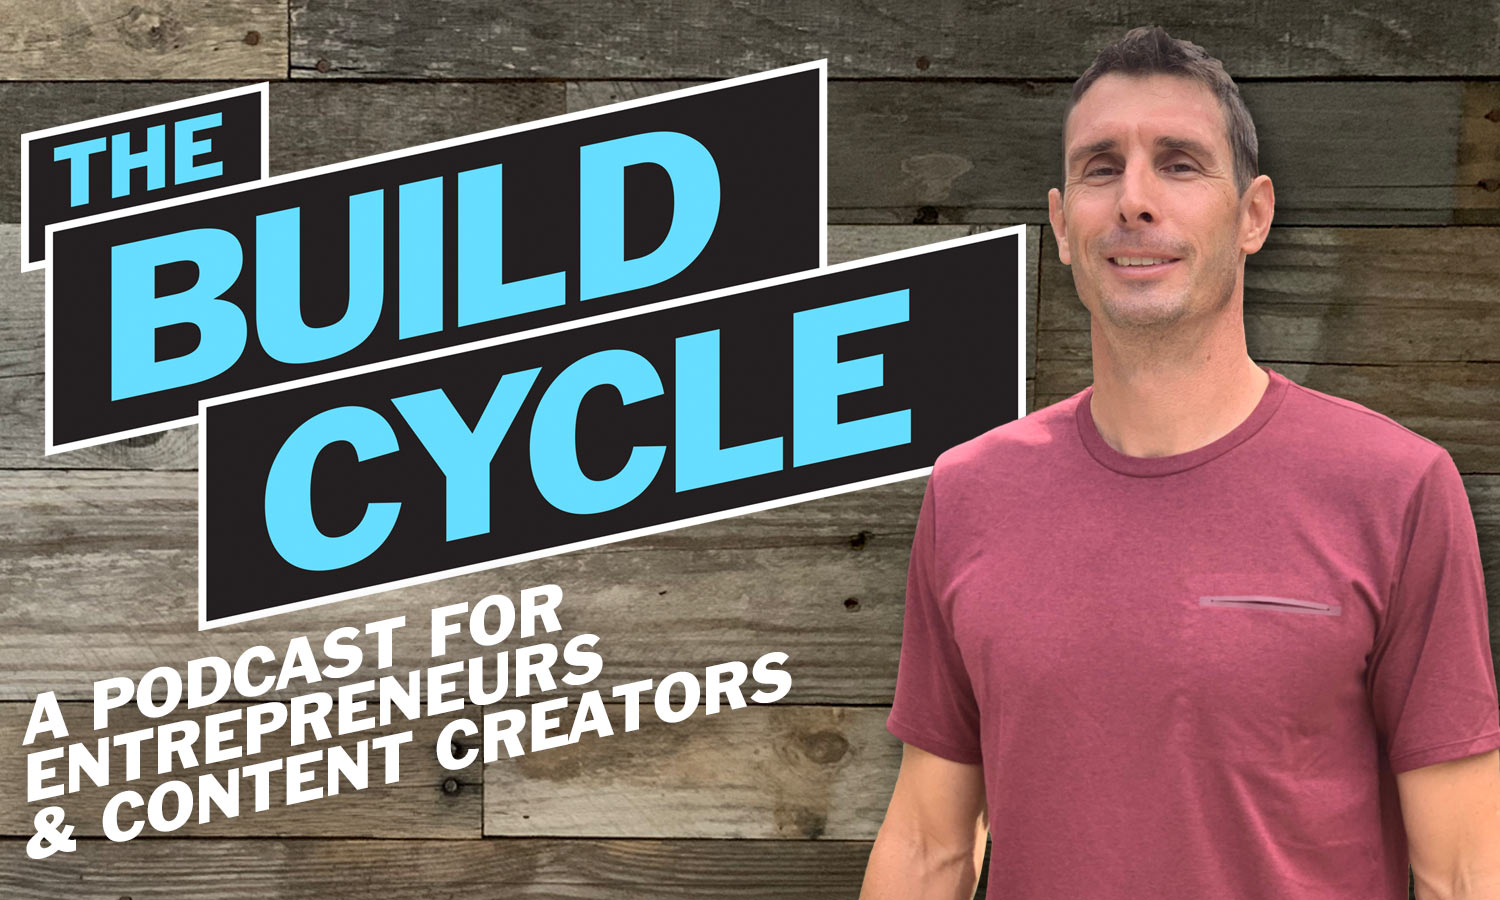 the build cycle podcast for content marketing and entrepreneurs who want to learn marketing and branding